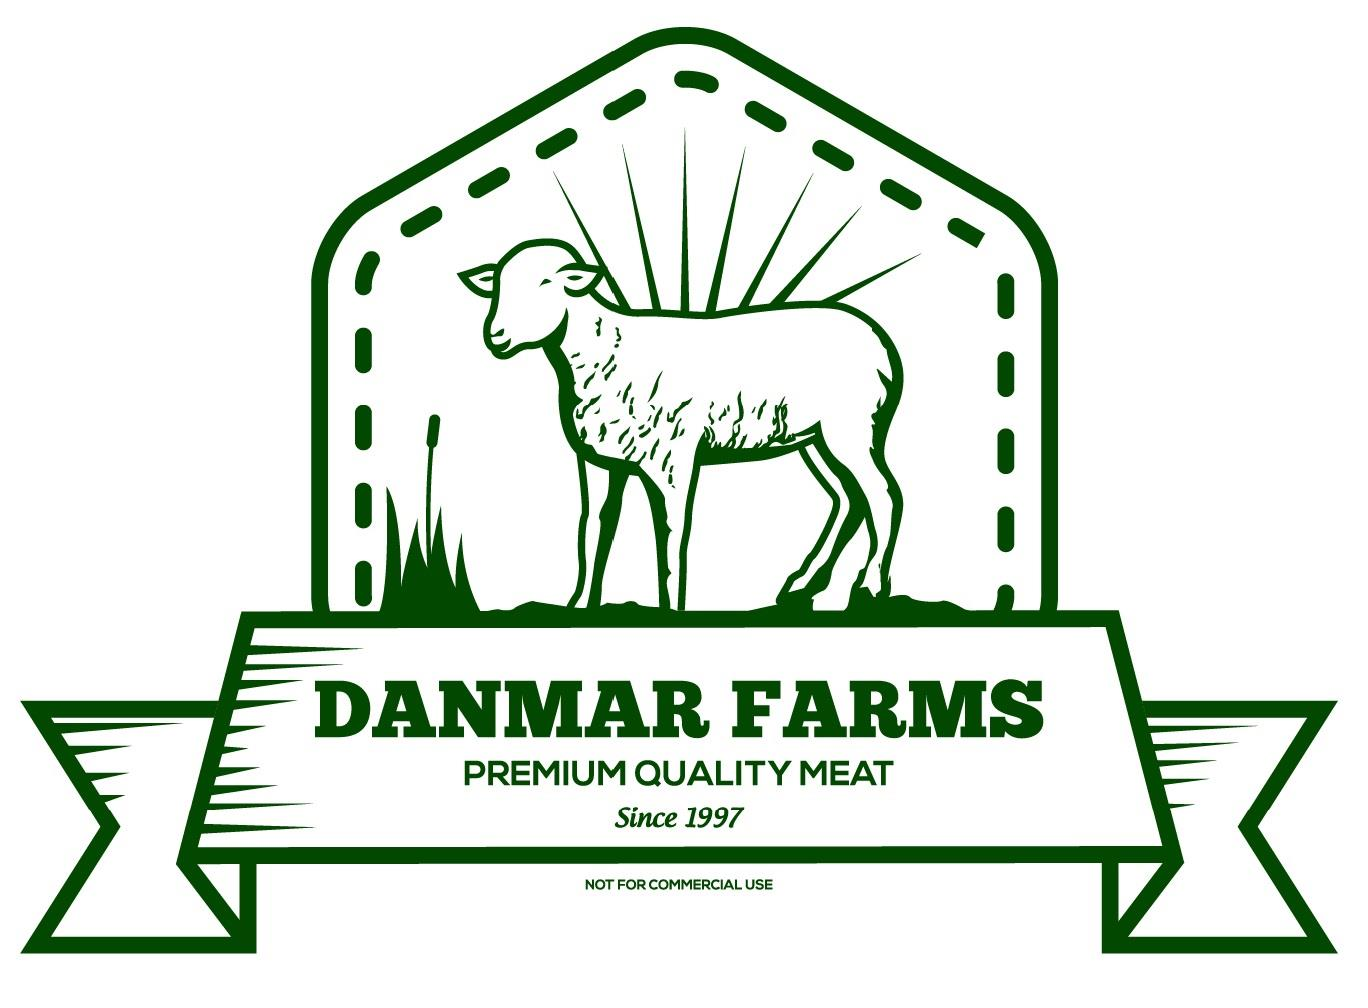 Danmar Farms